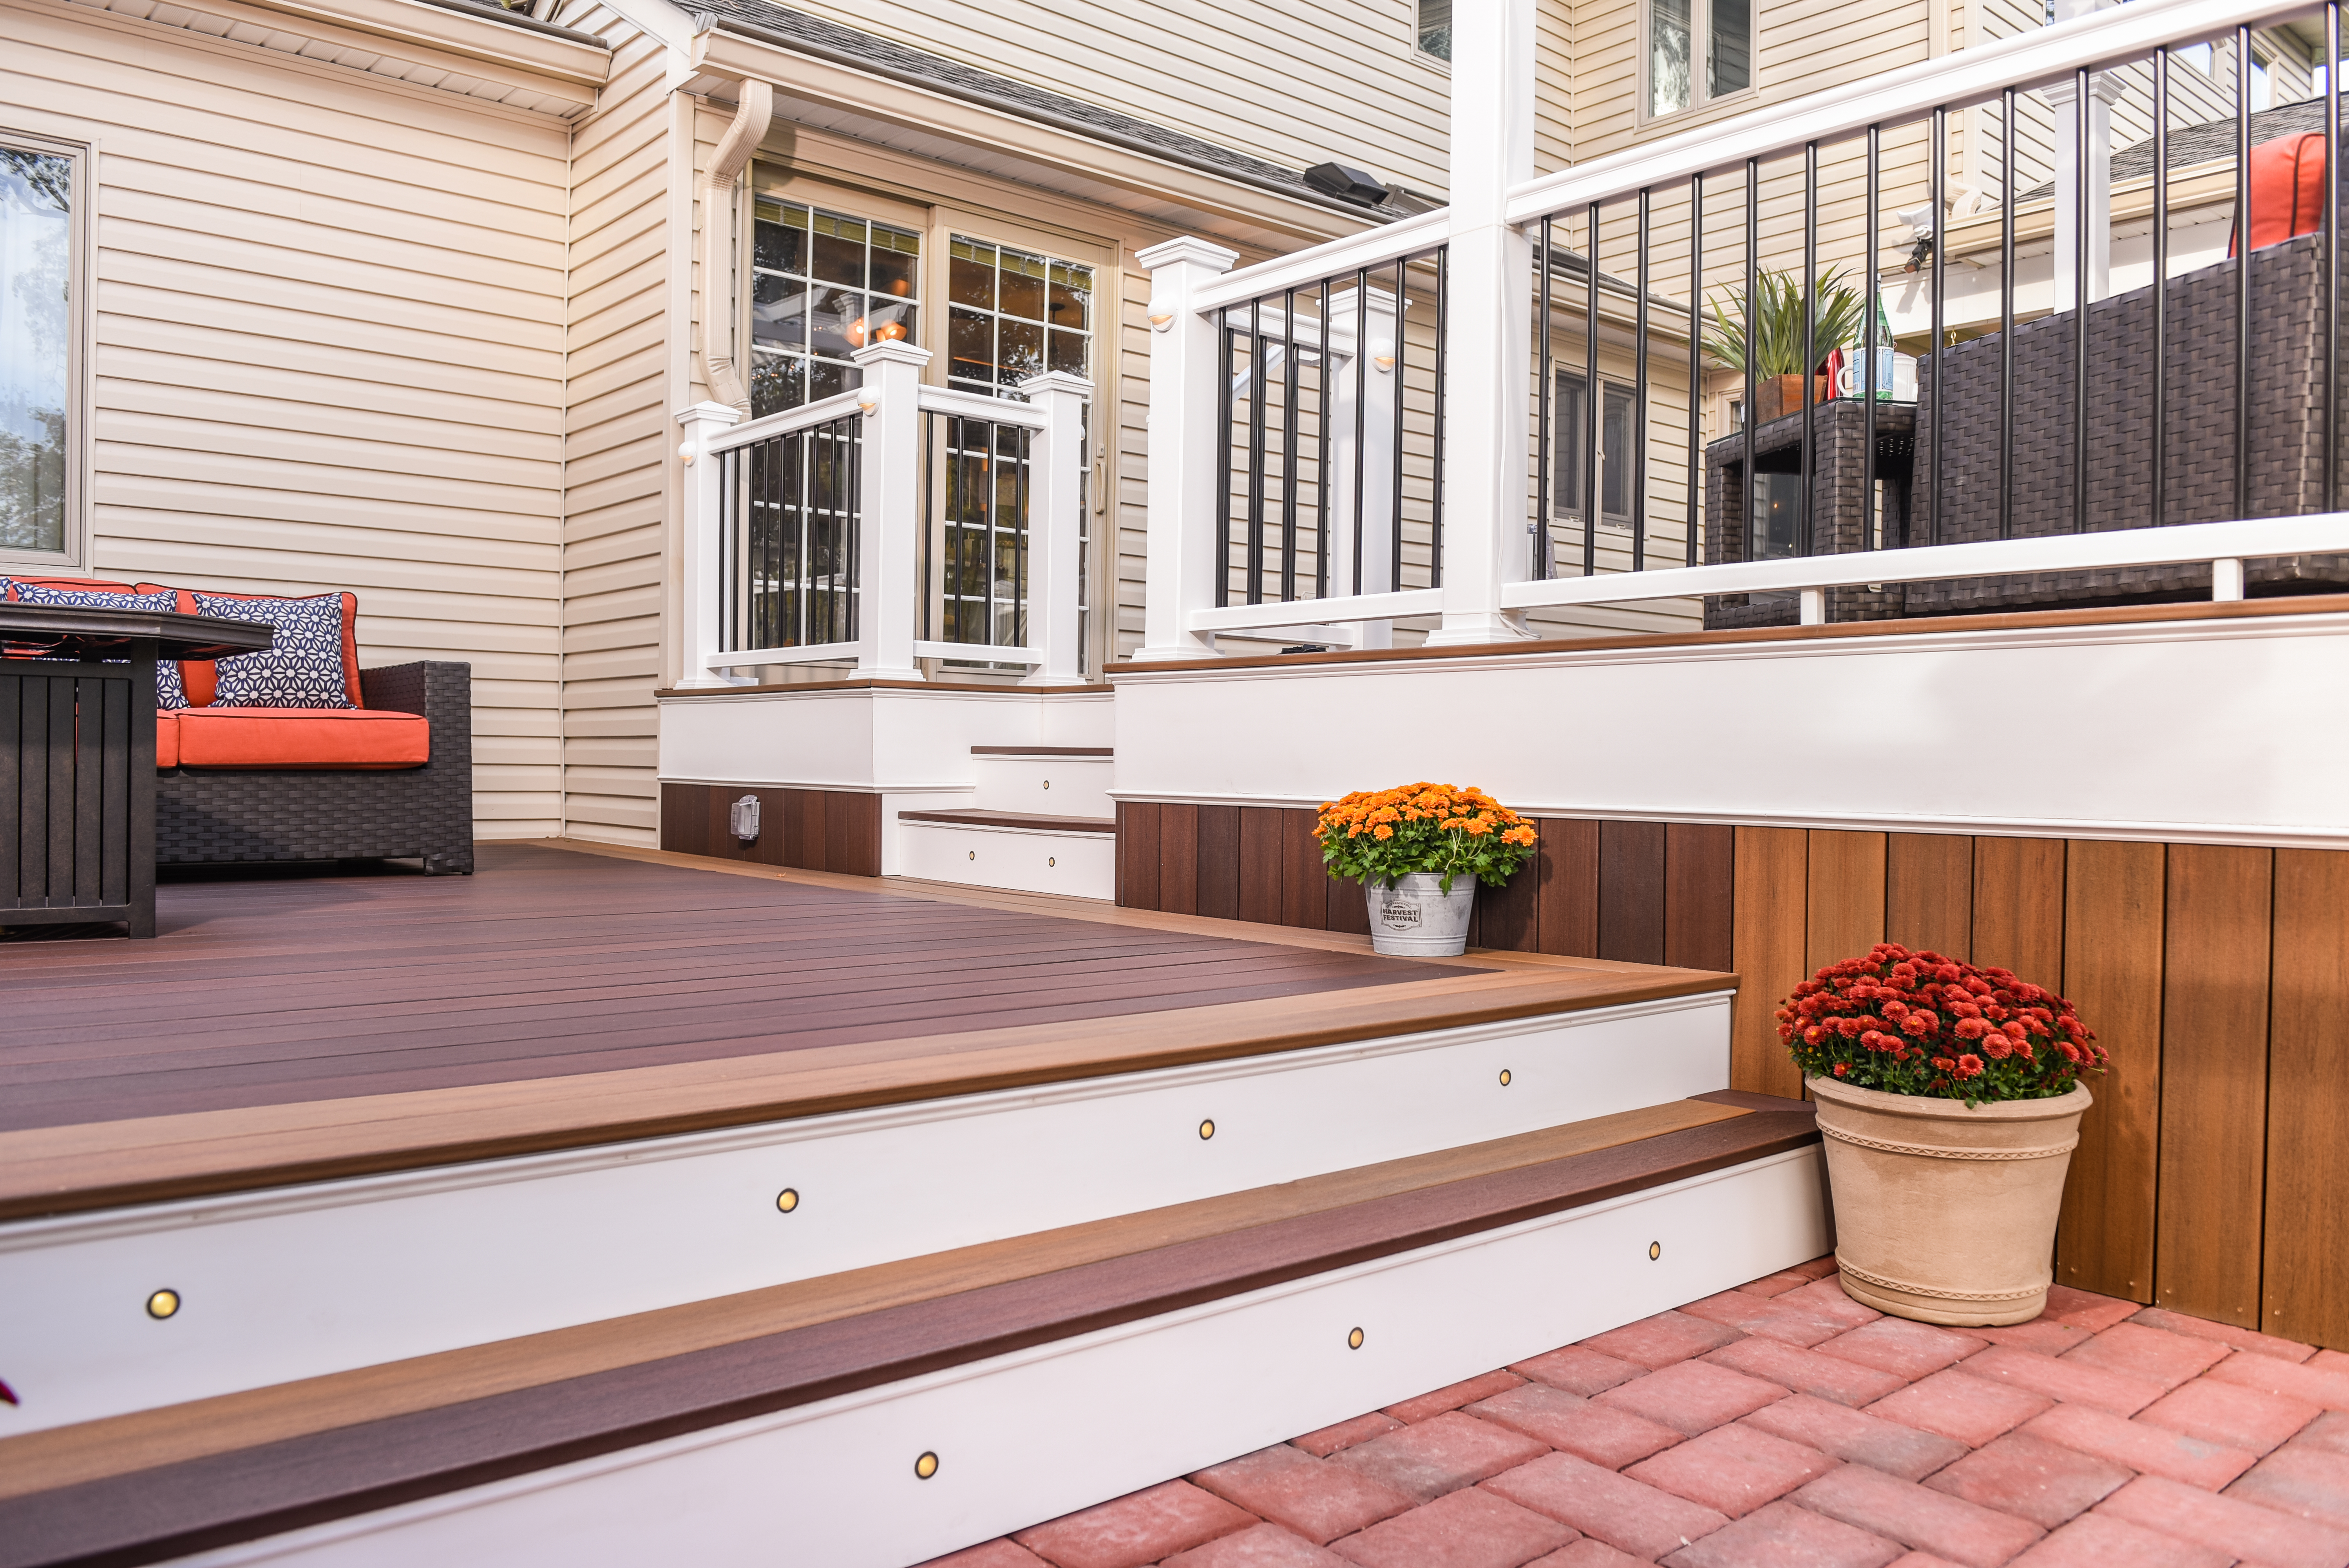 Symmetry Decking in Burnt Umber with Warm Sienna accents, complemented by Symmetry Railing in Tranquil White.